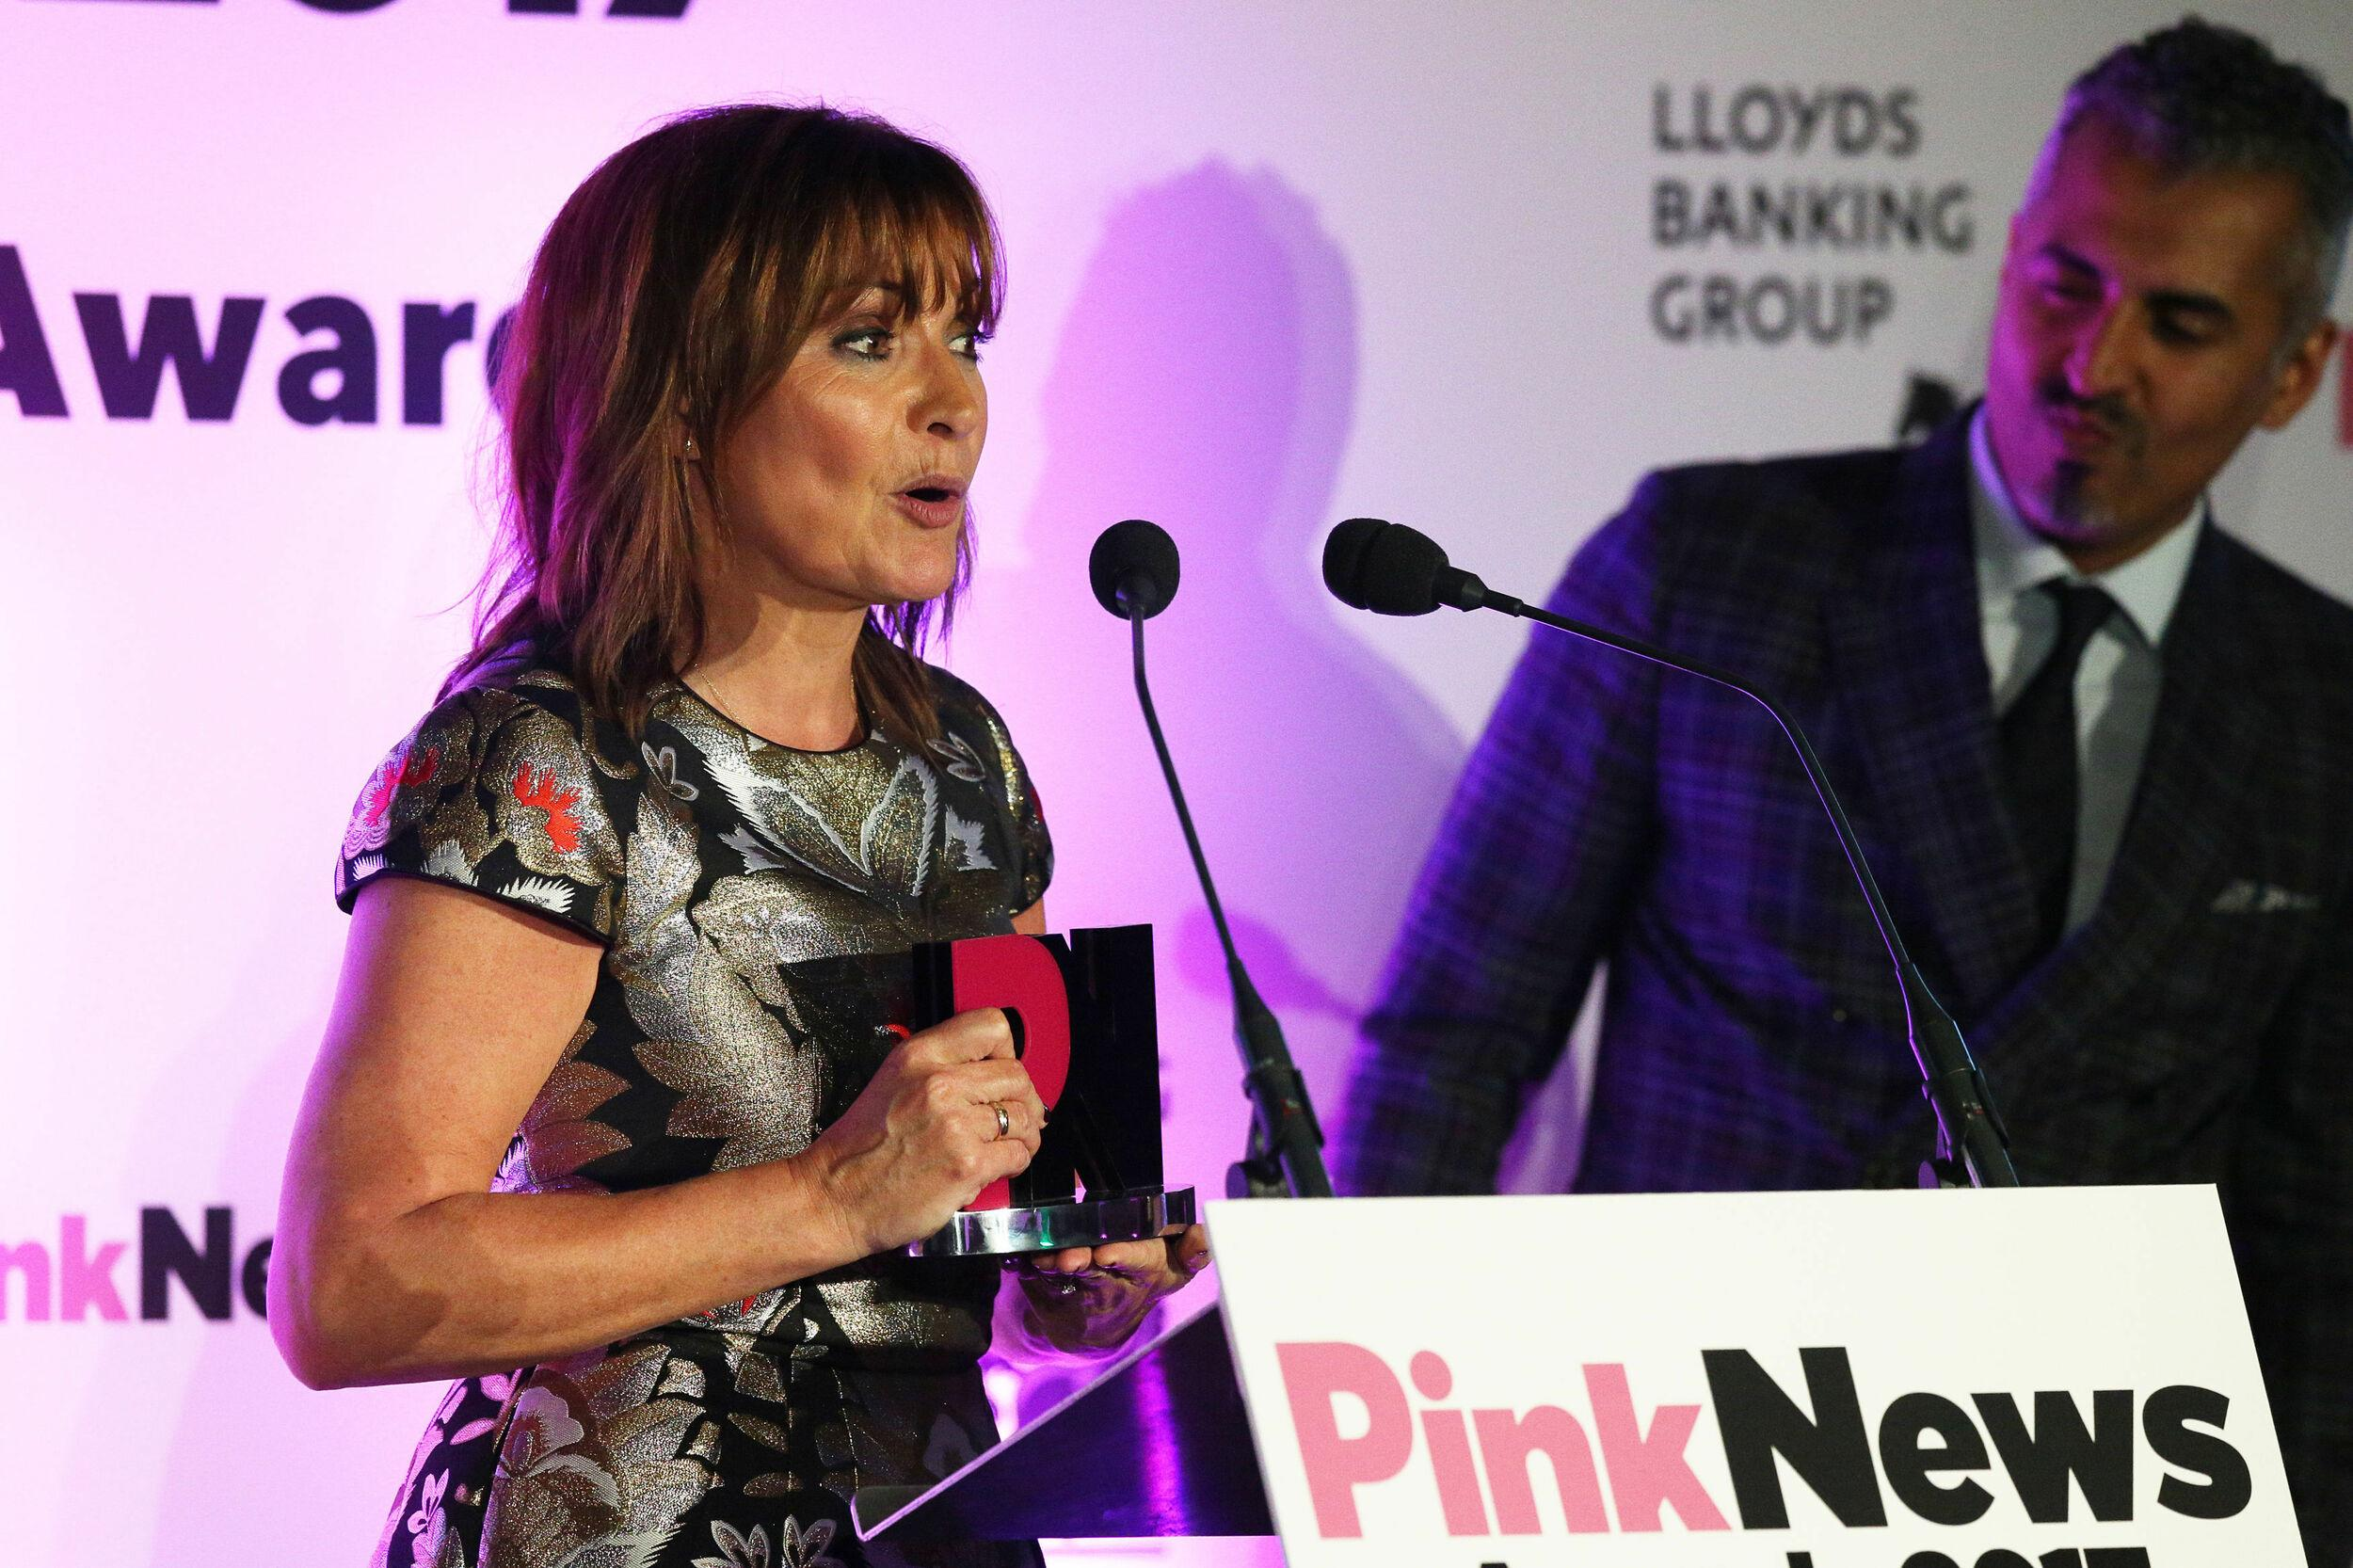 Maajid Nawaz and Lorraine Kelly receive a Pink News Broadcast Award during the the PinkNews awards dinner at One Great George Street in London.